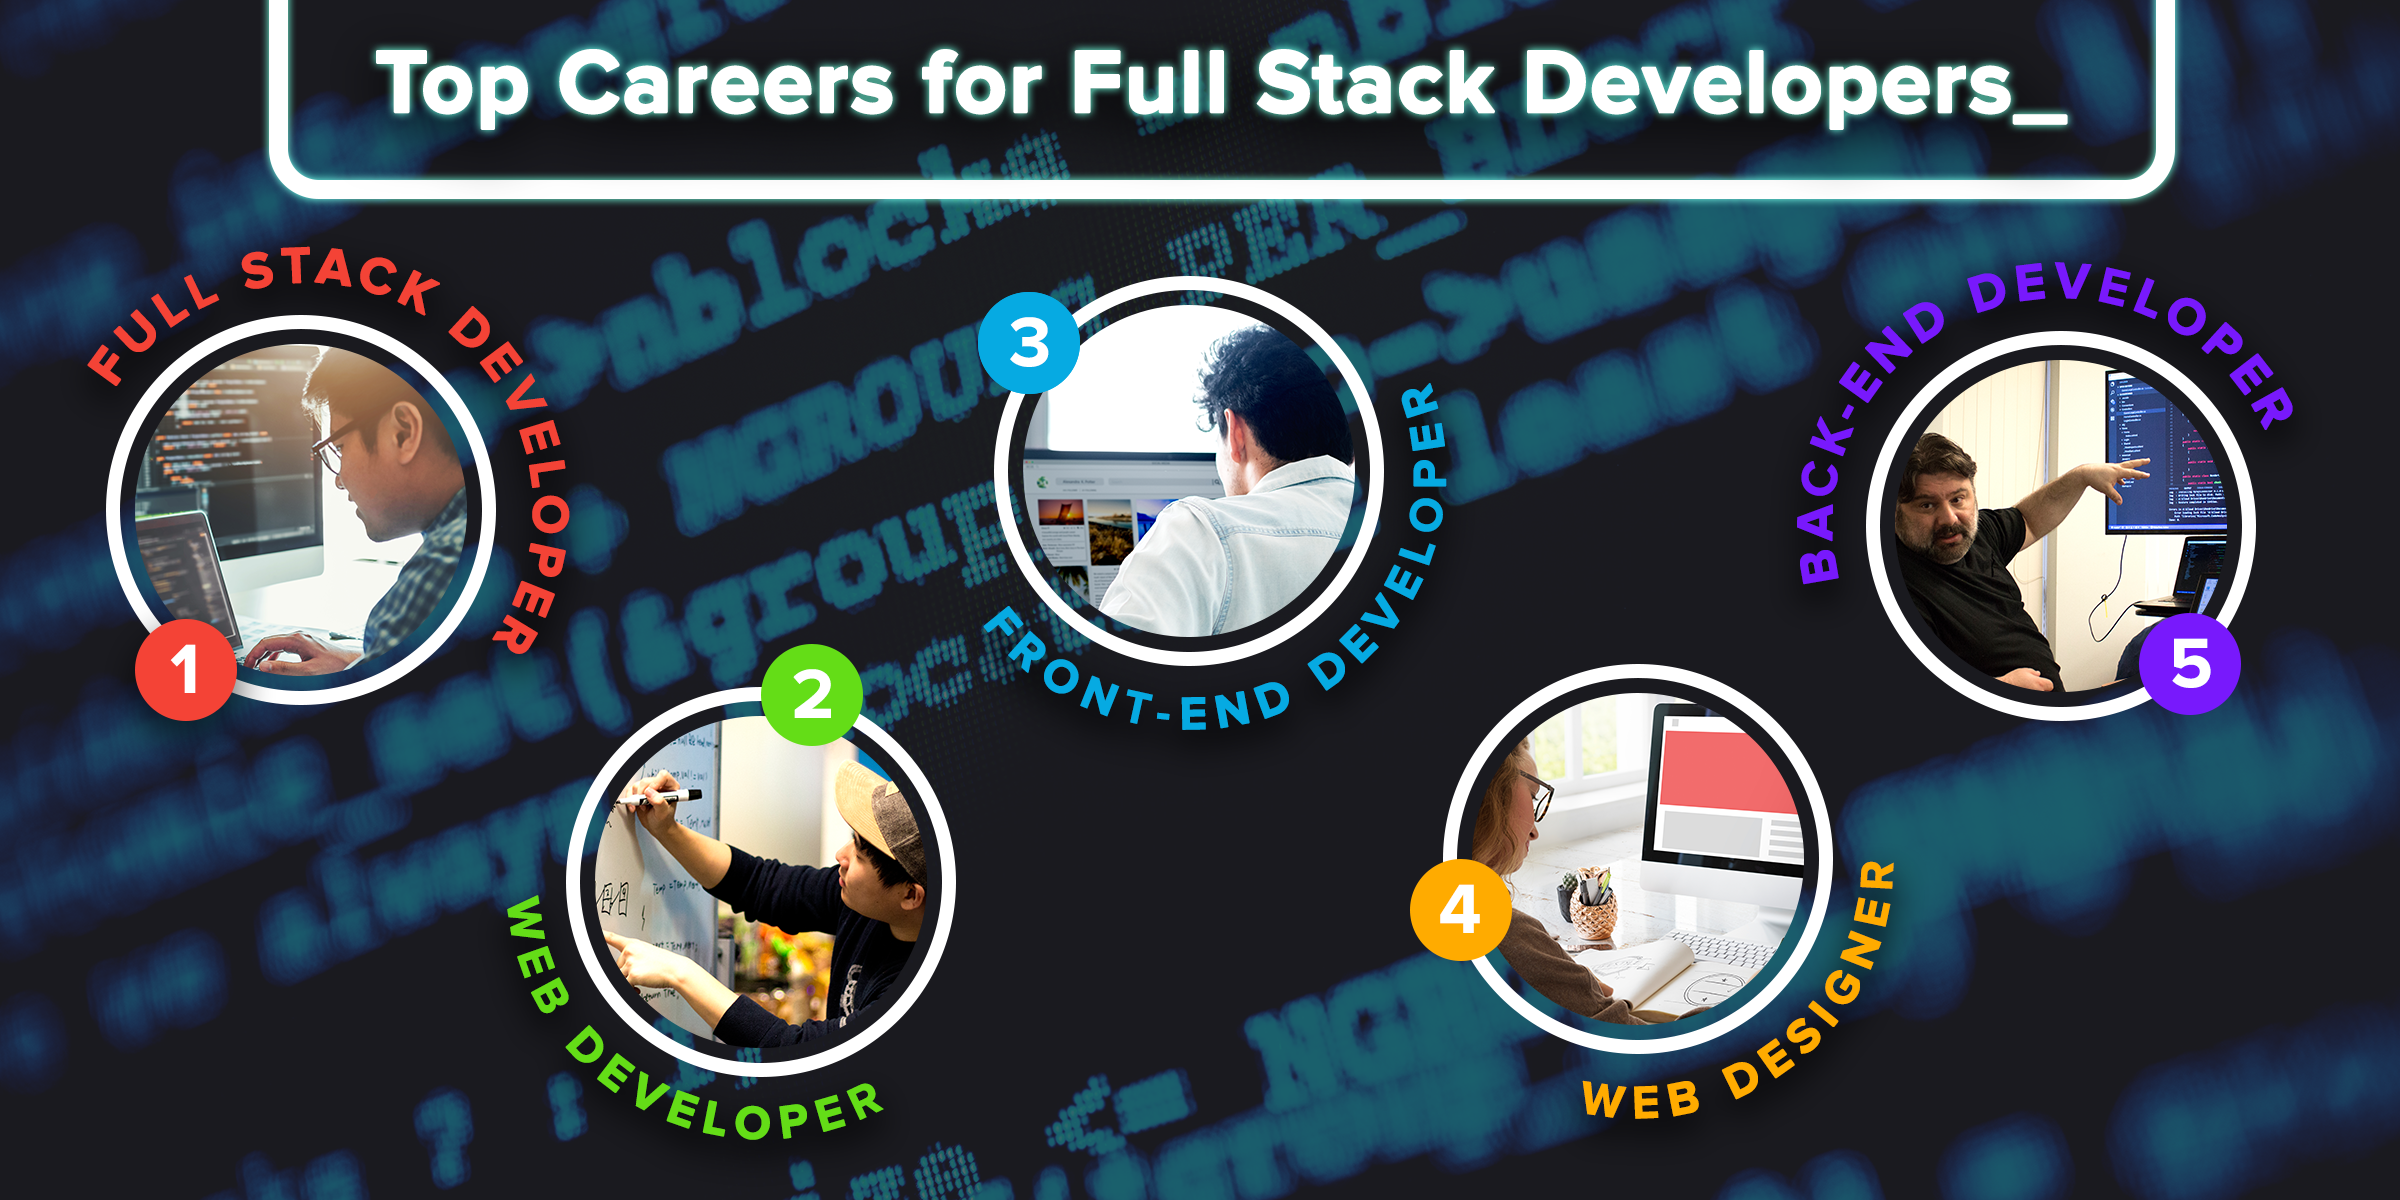 Top Careers for Full Stack Developers